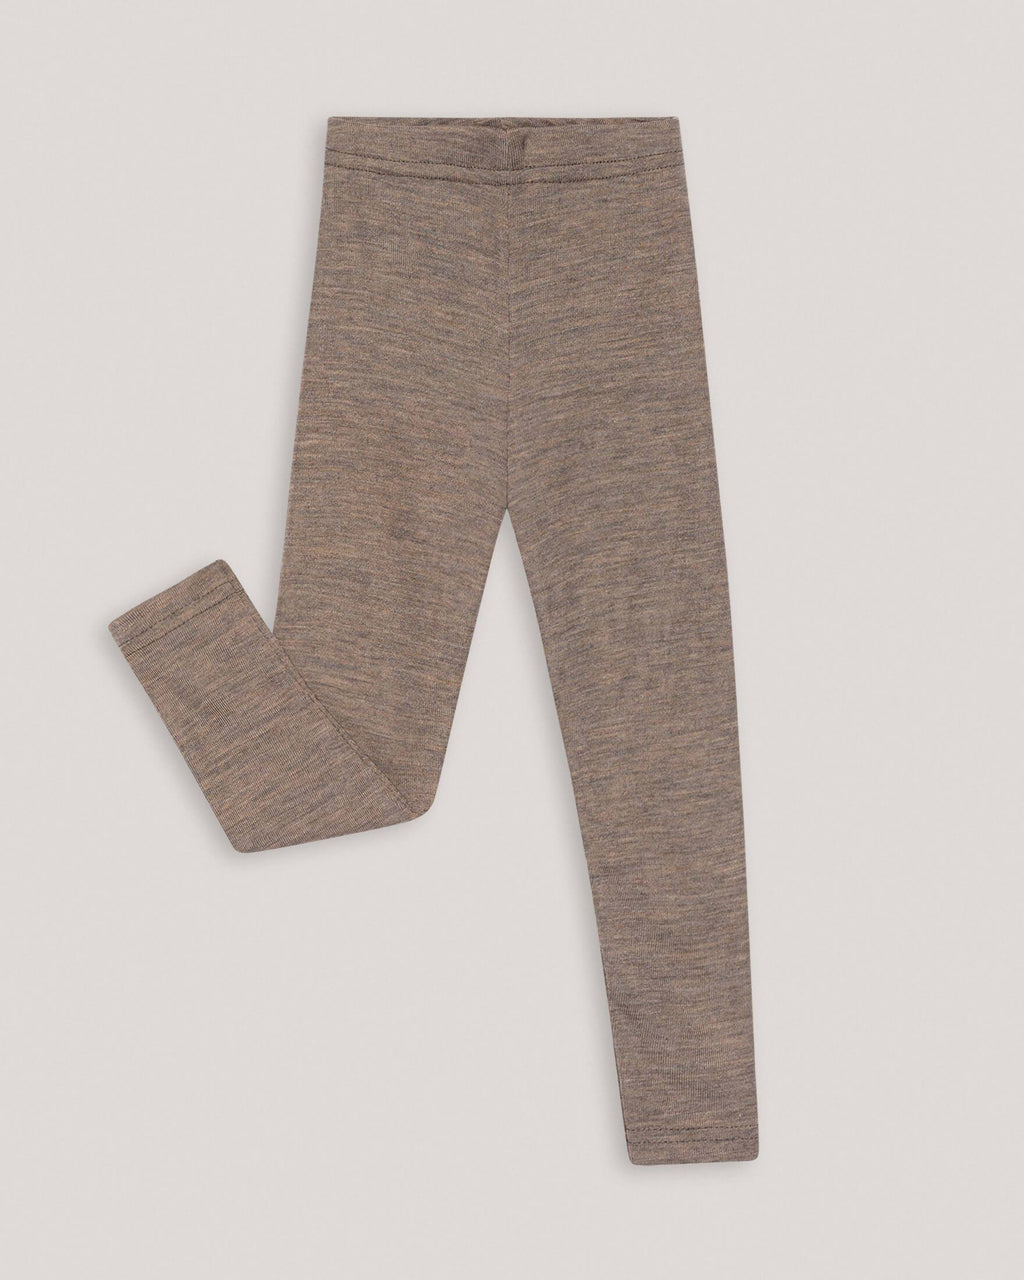 variant_1 | EN Brown Leggings Kids Multicolor ENGEL | DE Braune Leggings Kinder Bunt ENGEL